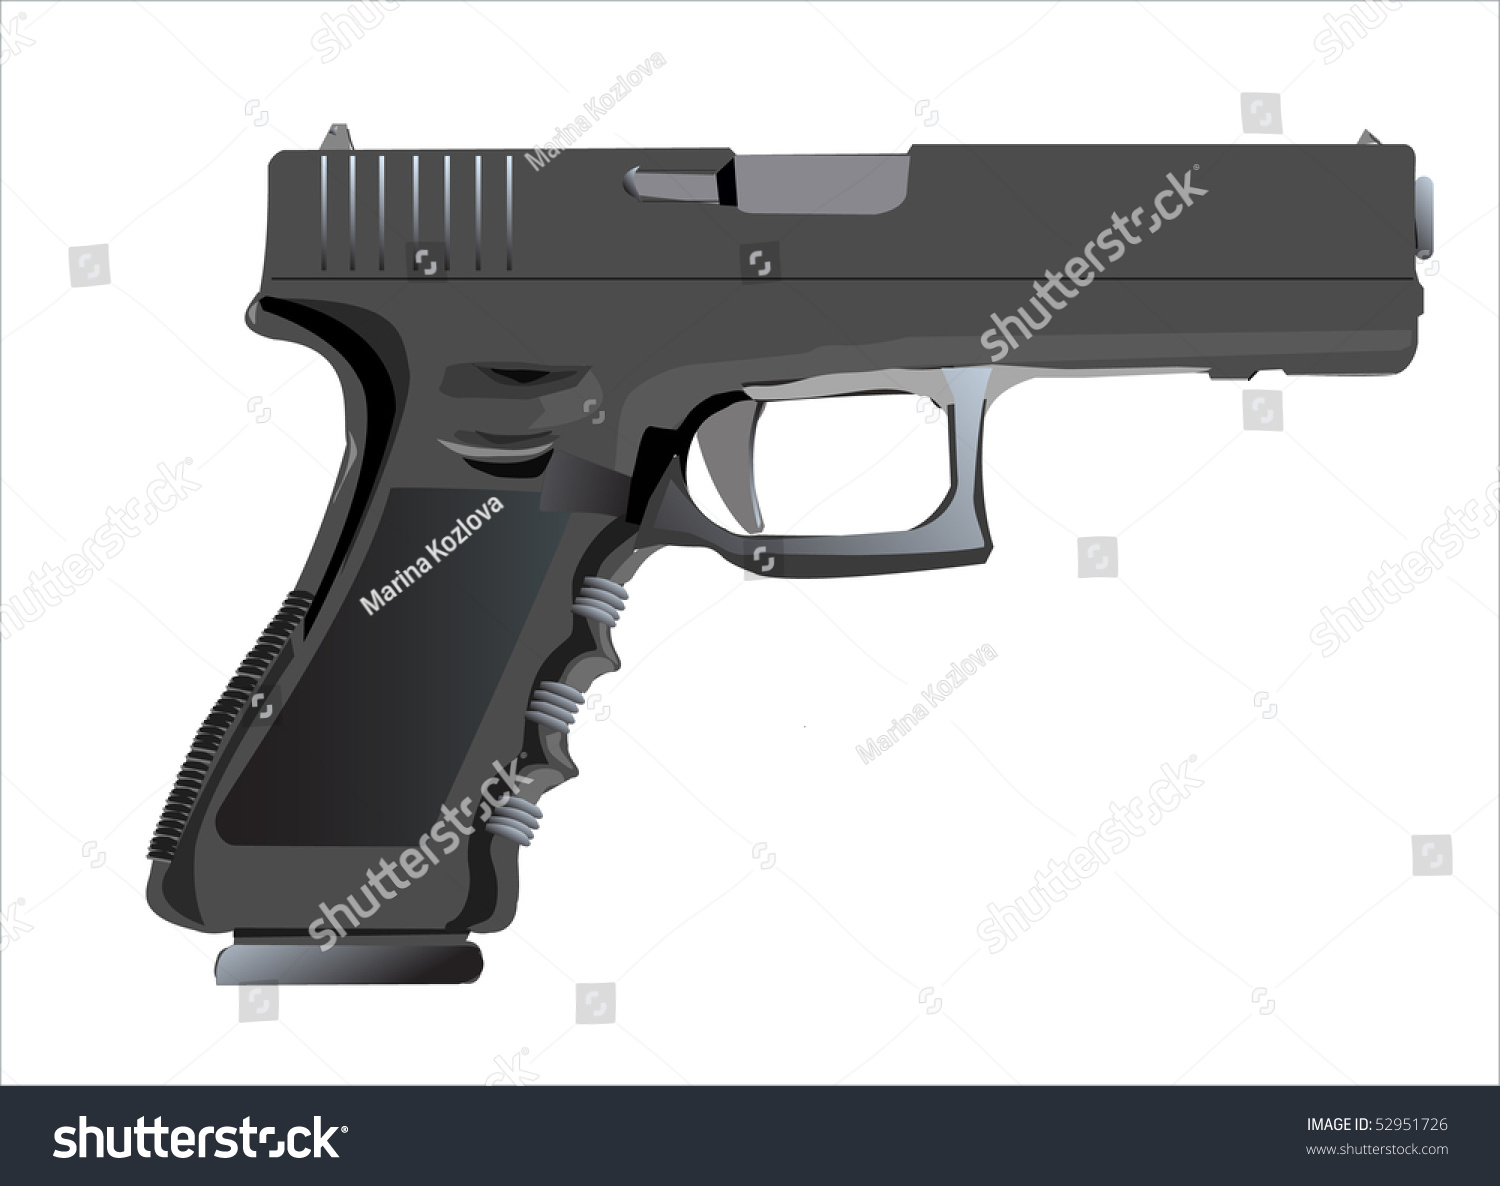 gun white background - photo #26